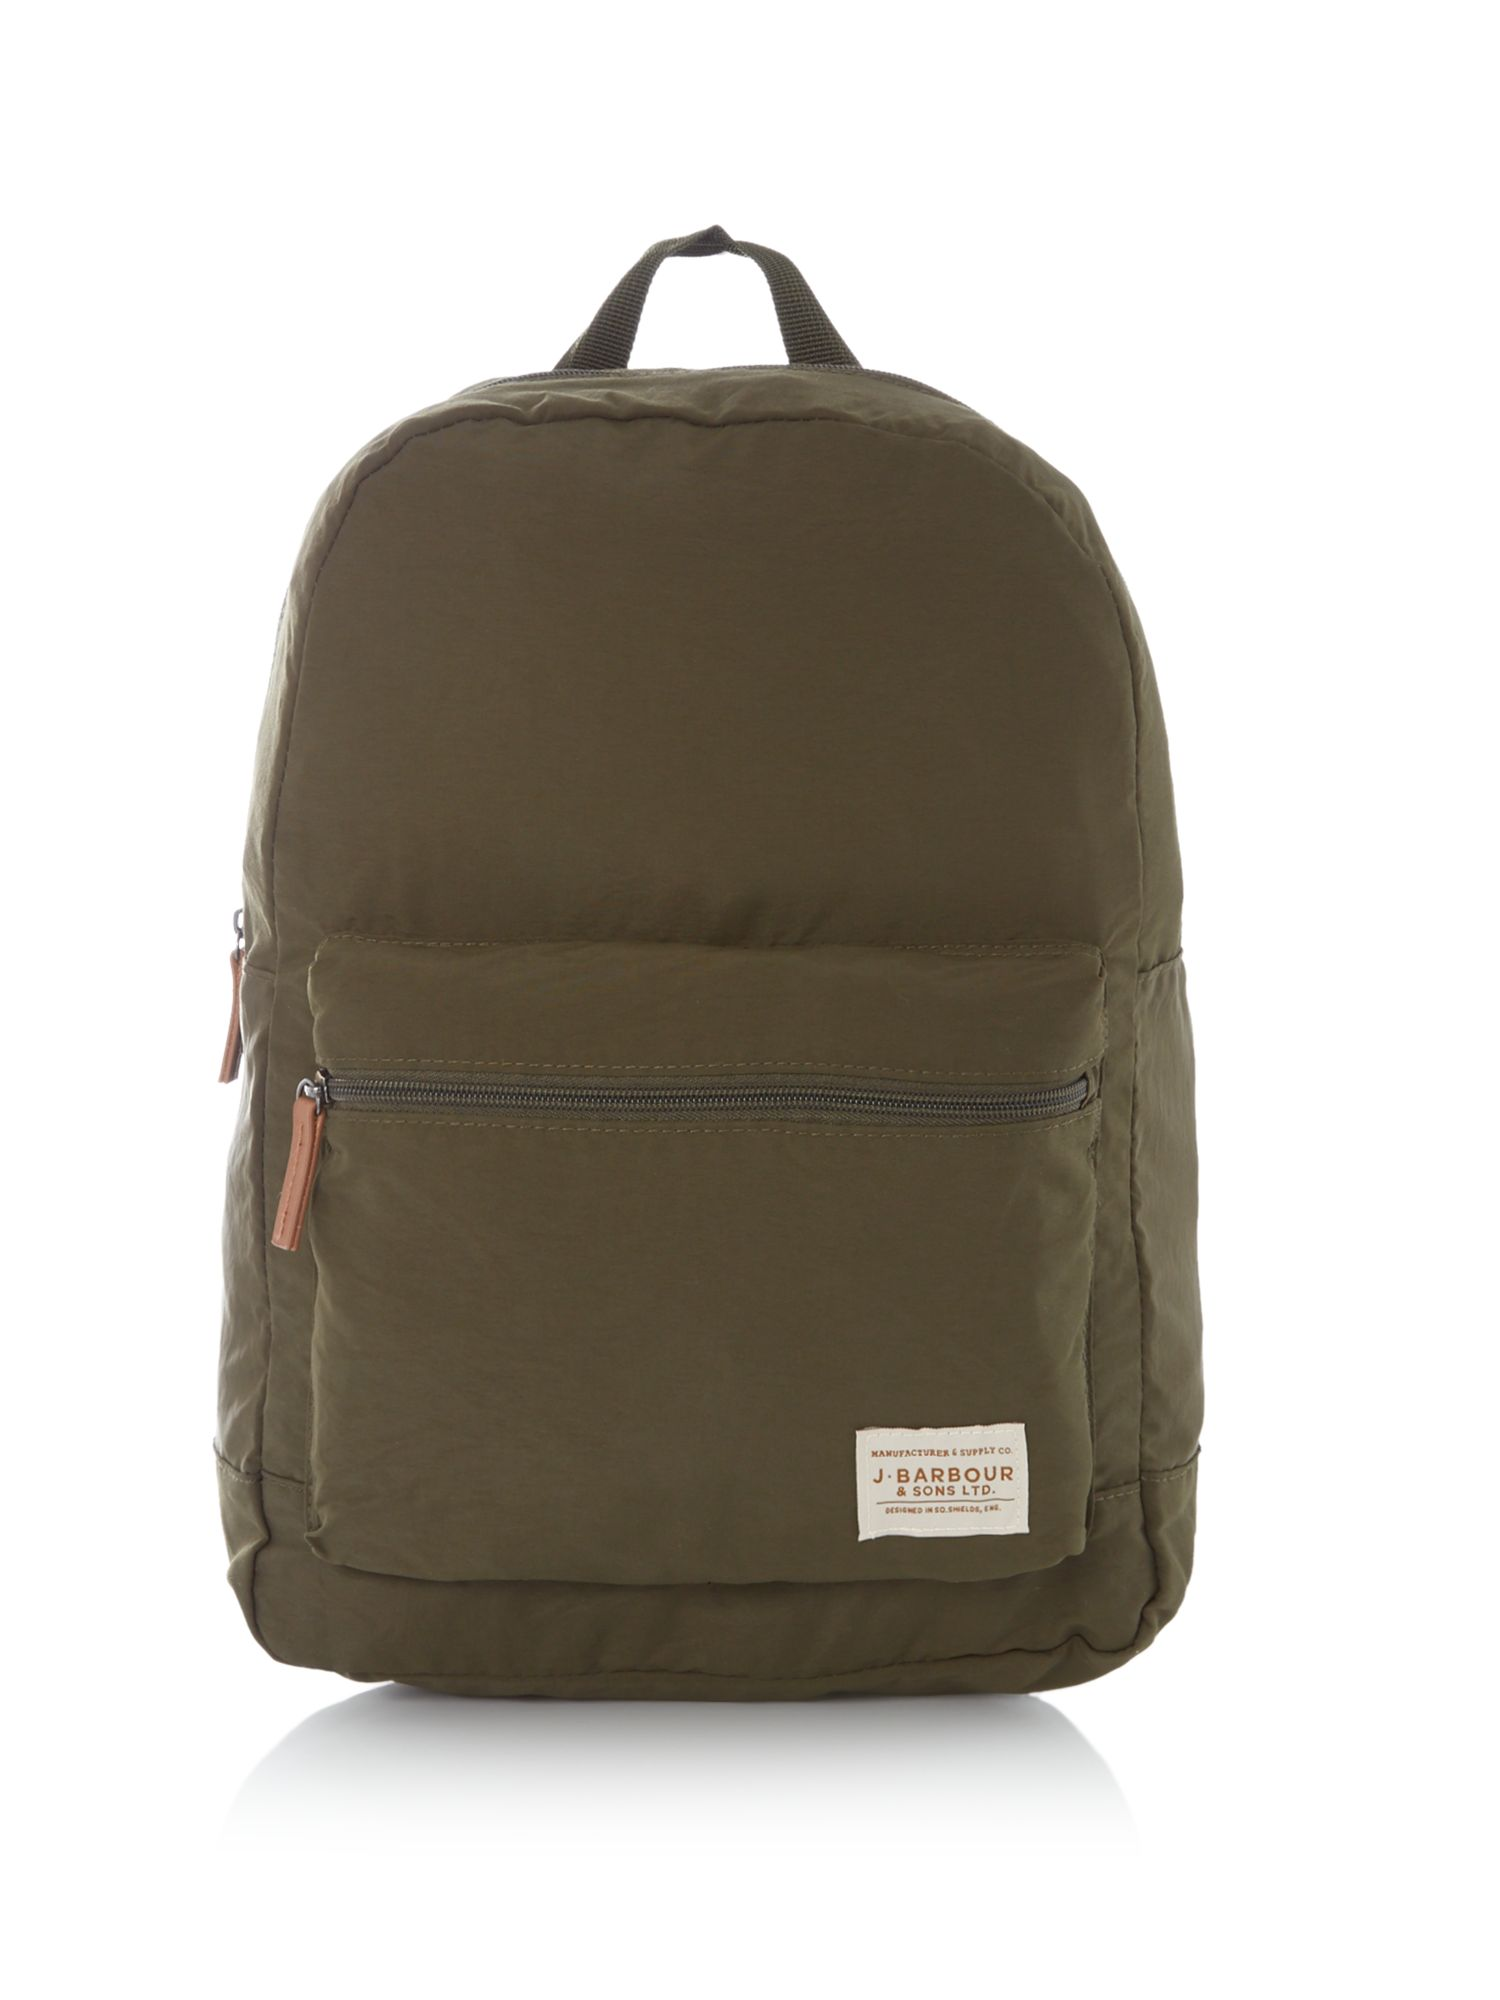 Barbour Barbour Beauly Backpack, Dark Green